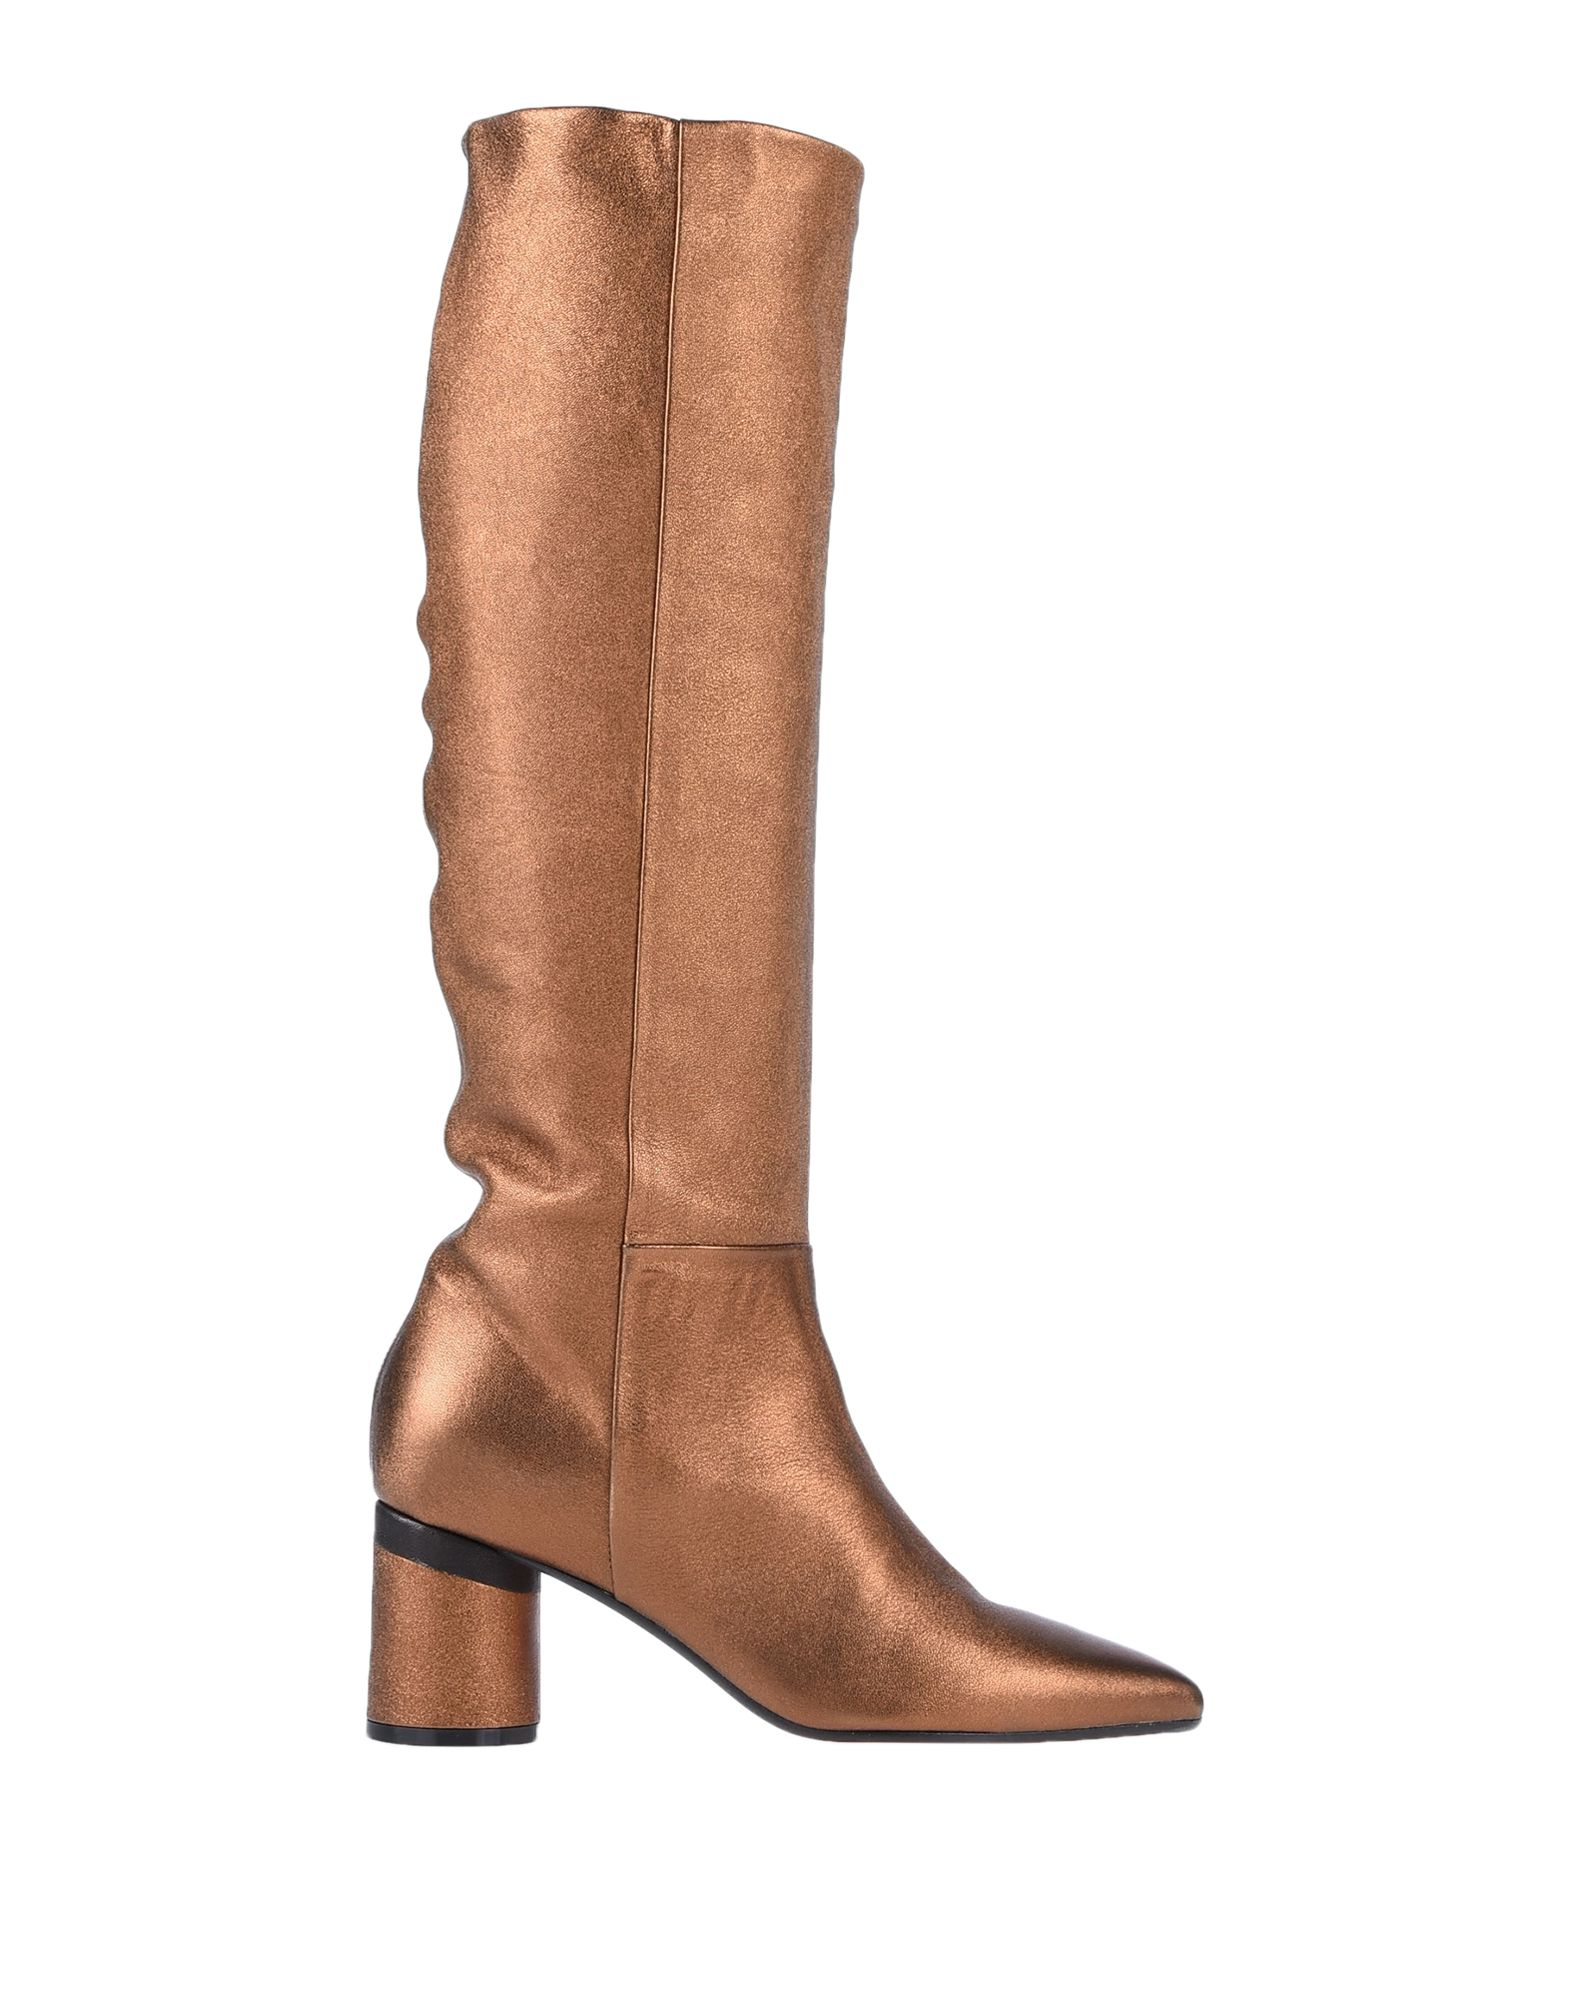 Alysi Boots In Copper